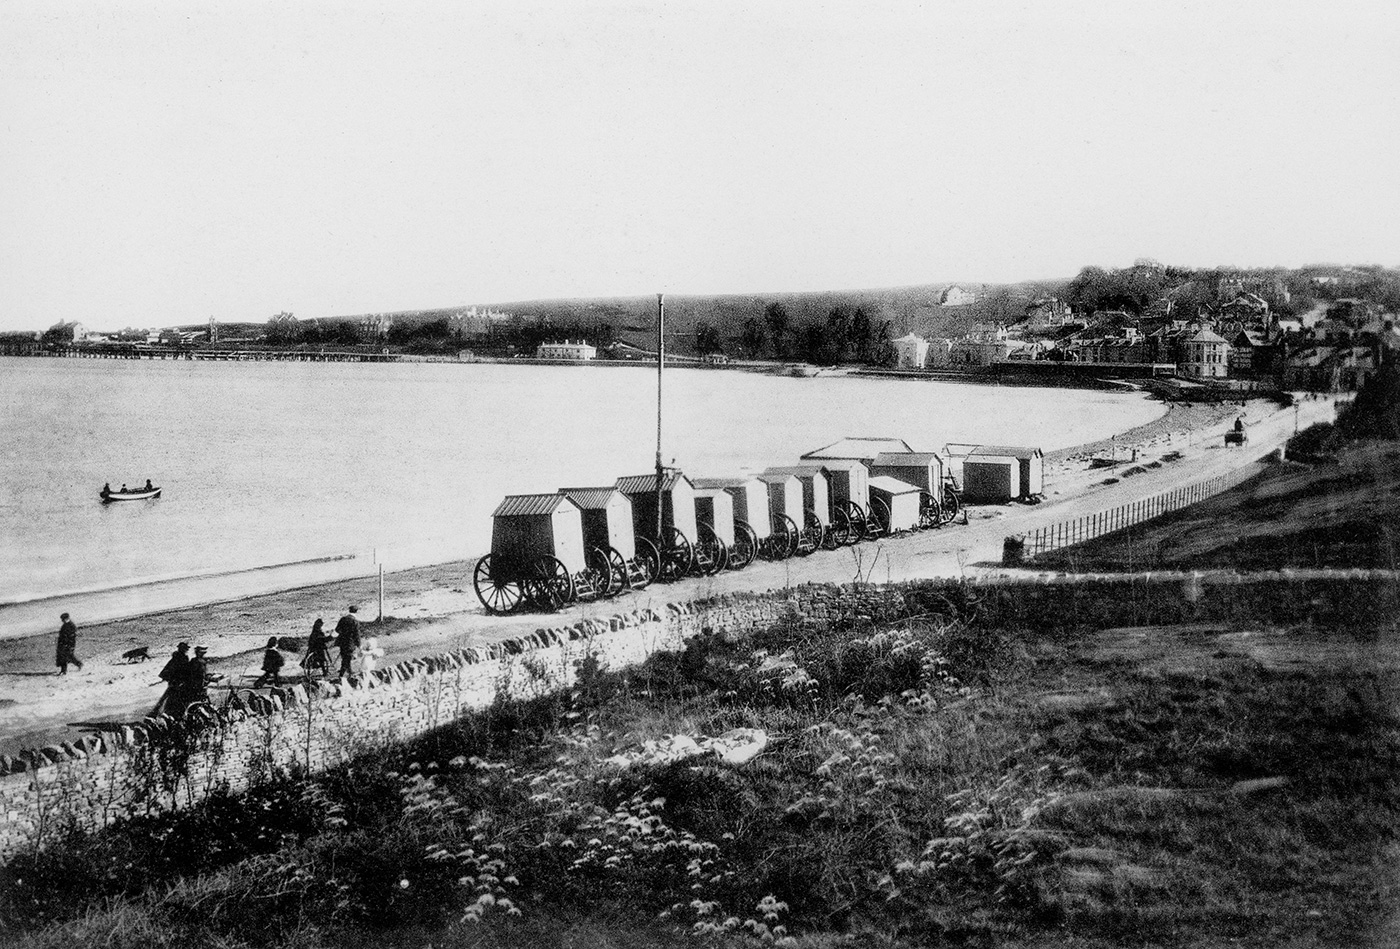 Looking South along Shore Road with Bathing Huts